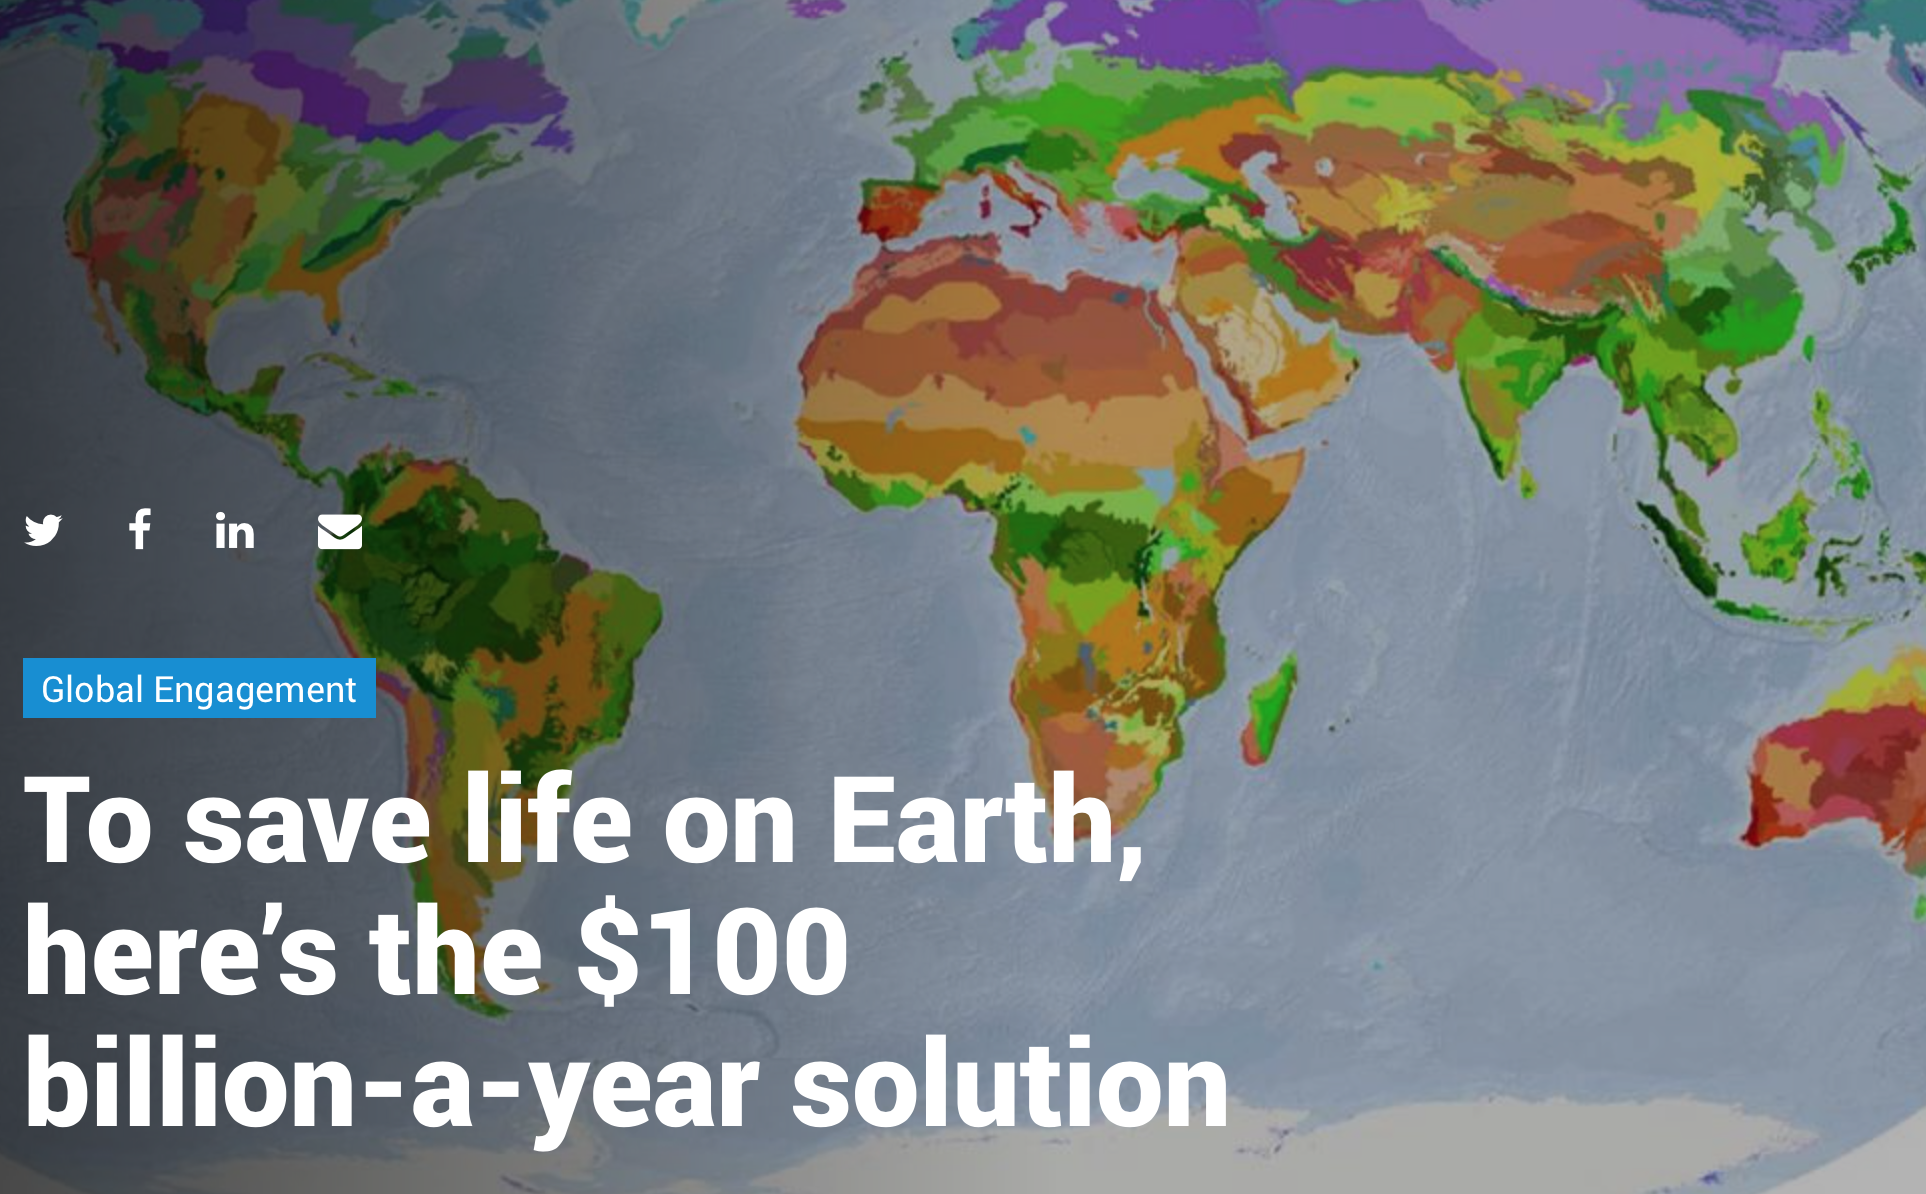 To save life on Earth, here's the $100 billion-a-year solution